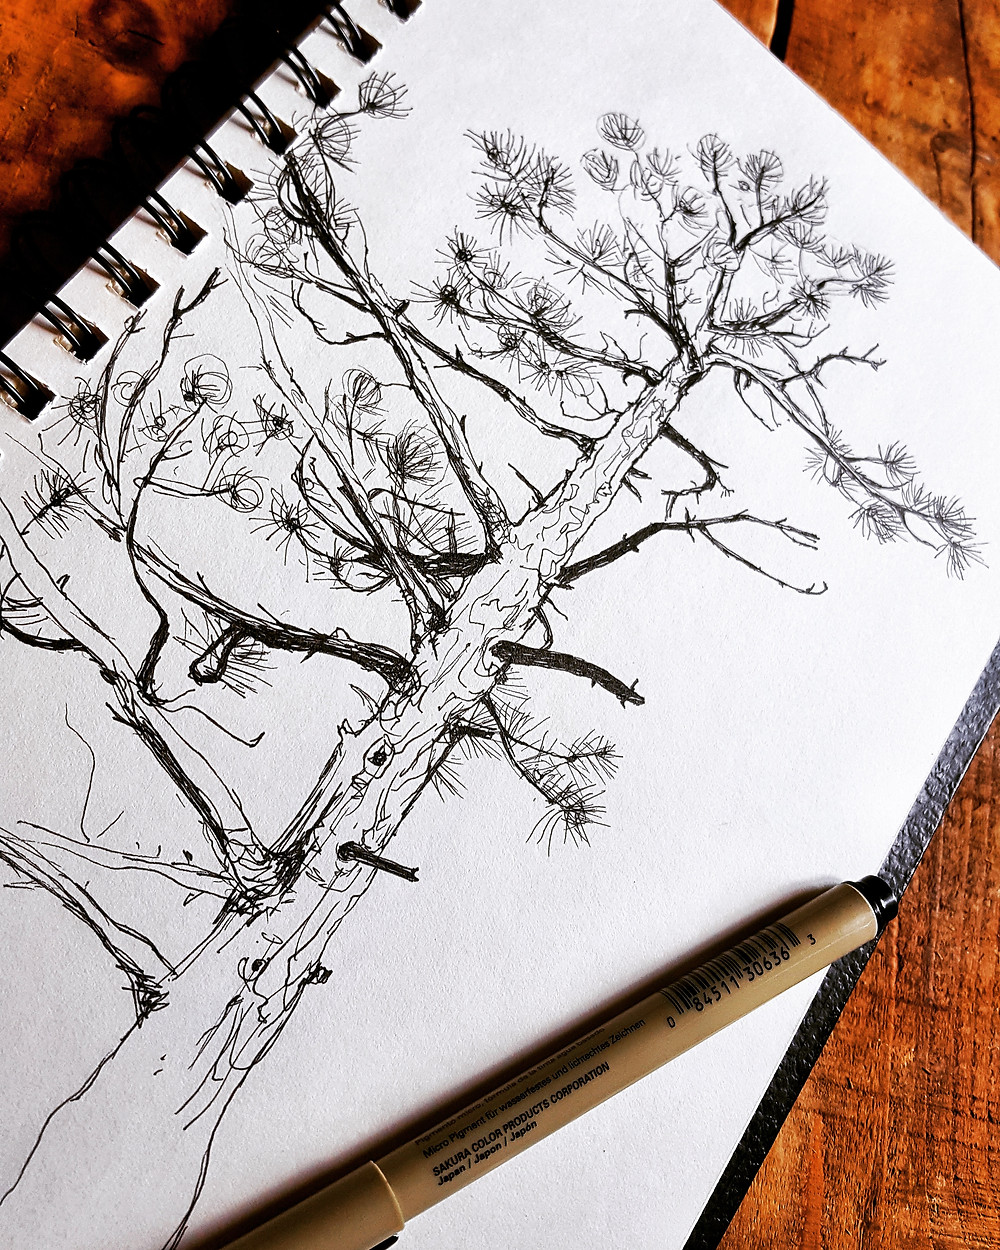 Sketch two, a tree on the campsite.